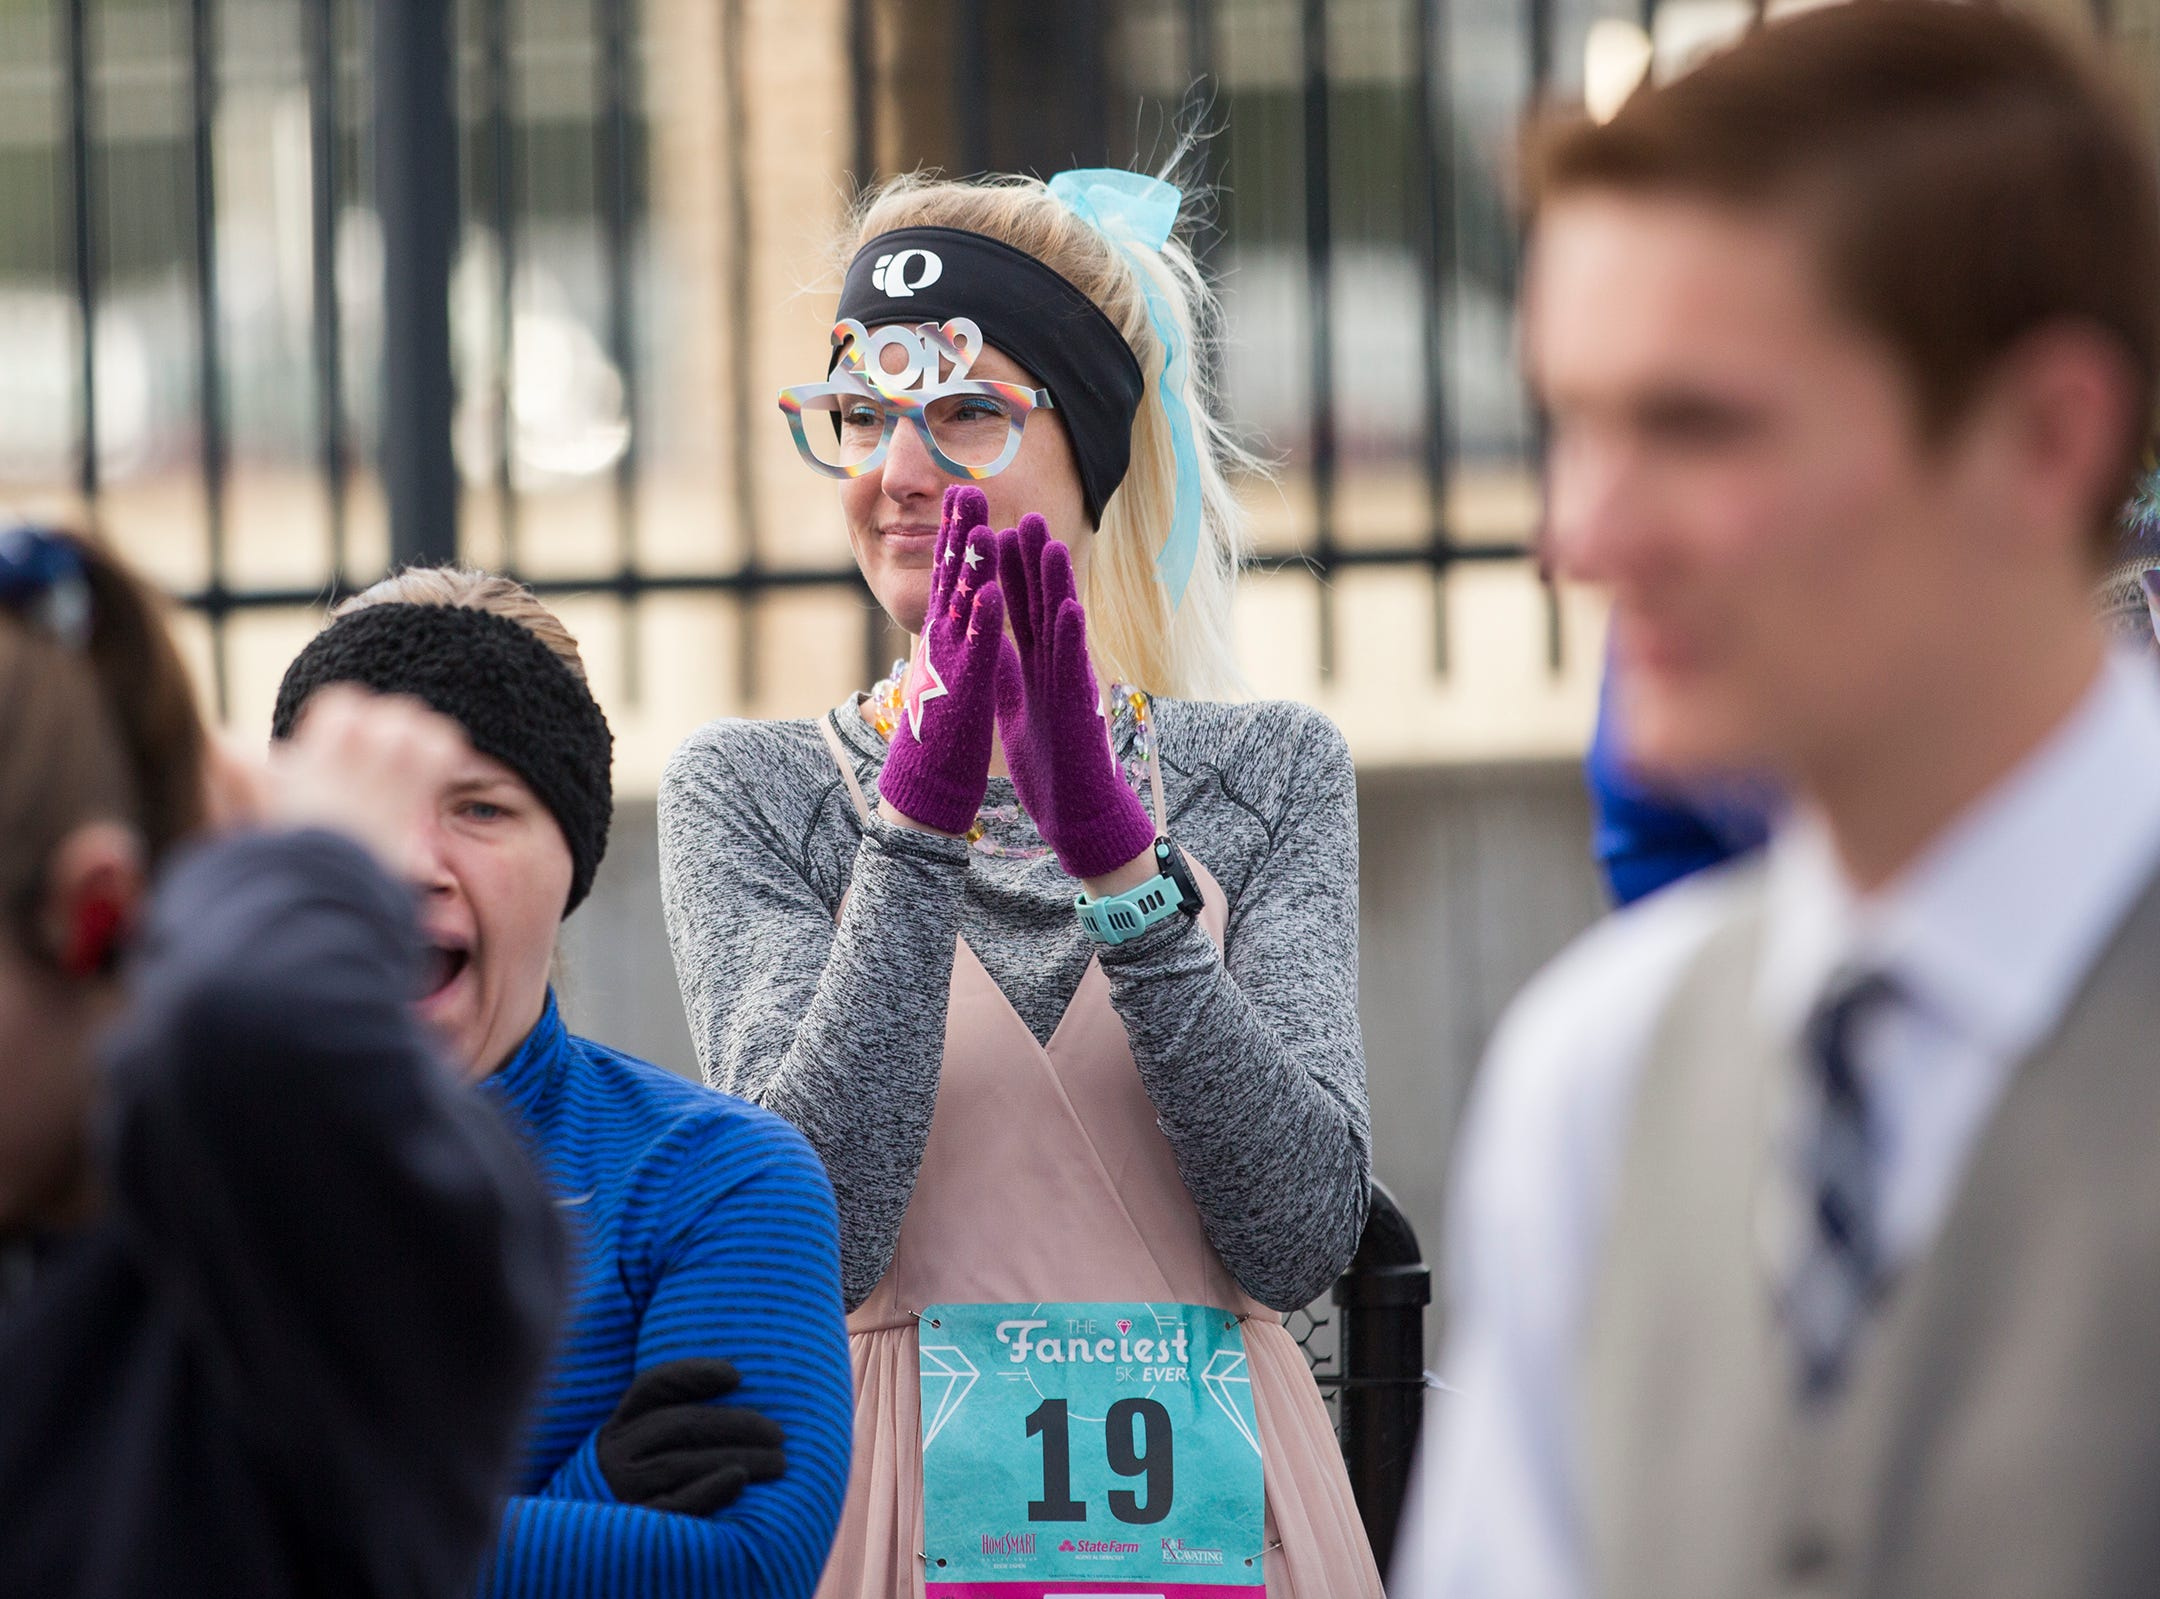 Kathy Butler claps before running in The Fanciest 5K. Ever. in Salem on Saturday, Dec. 29. All of the money raised will go directly to advocacy for sex-trafficking survivors in the mid-Willamette Valley.